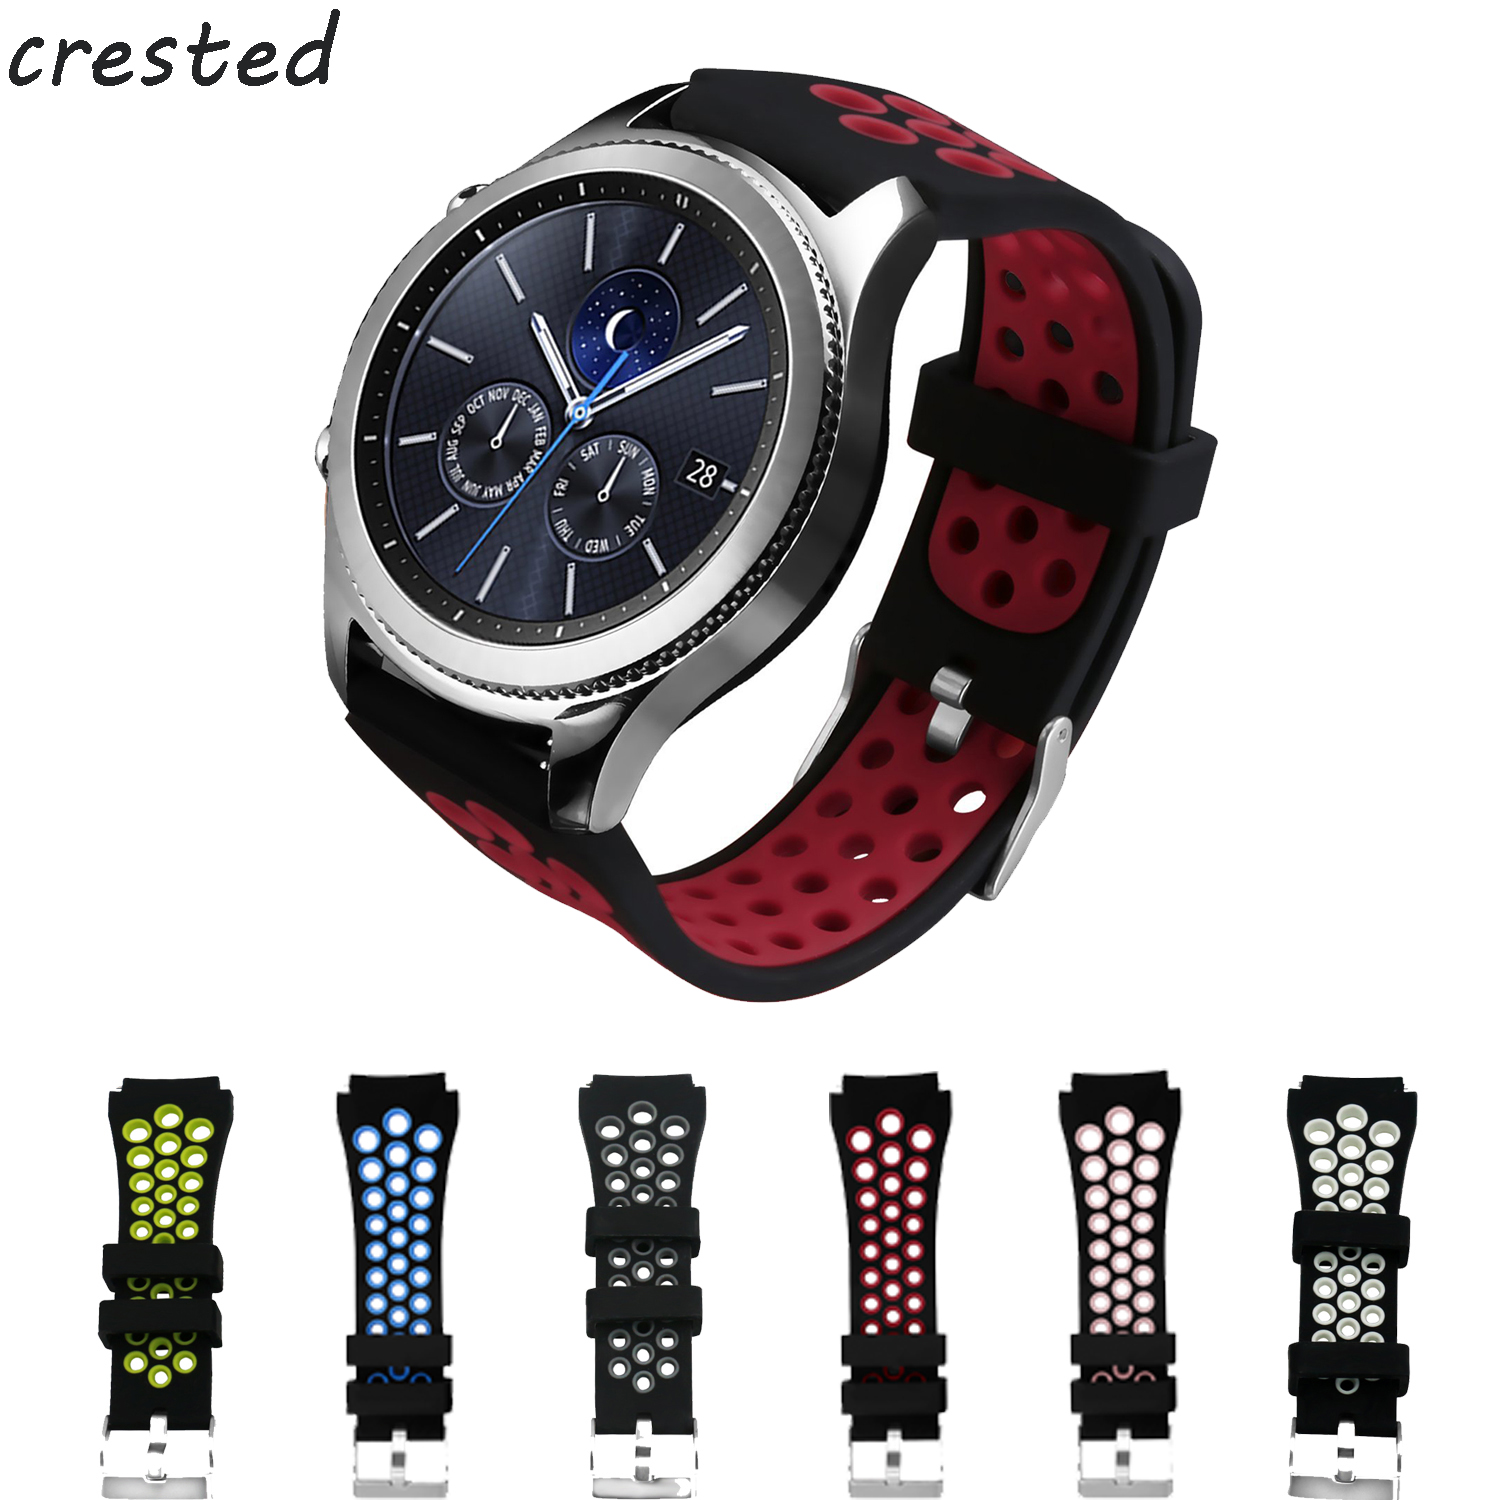 CRESTED sport silicone strap for samsung gear s3 Classic/Frontier replacement rubber band watch strap for samsung gear S3 смарт часы samsung gear s3 frontier матовый титан